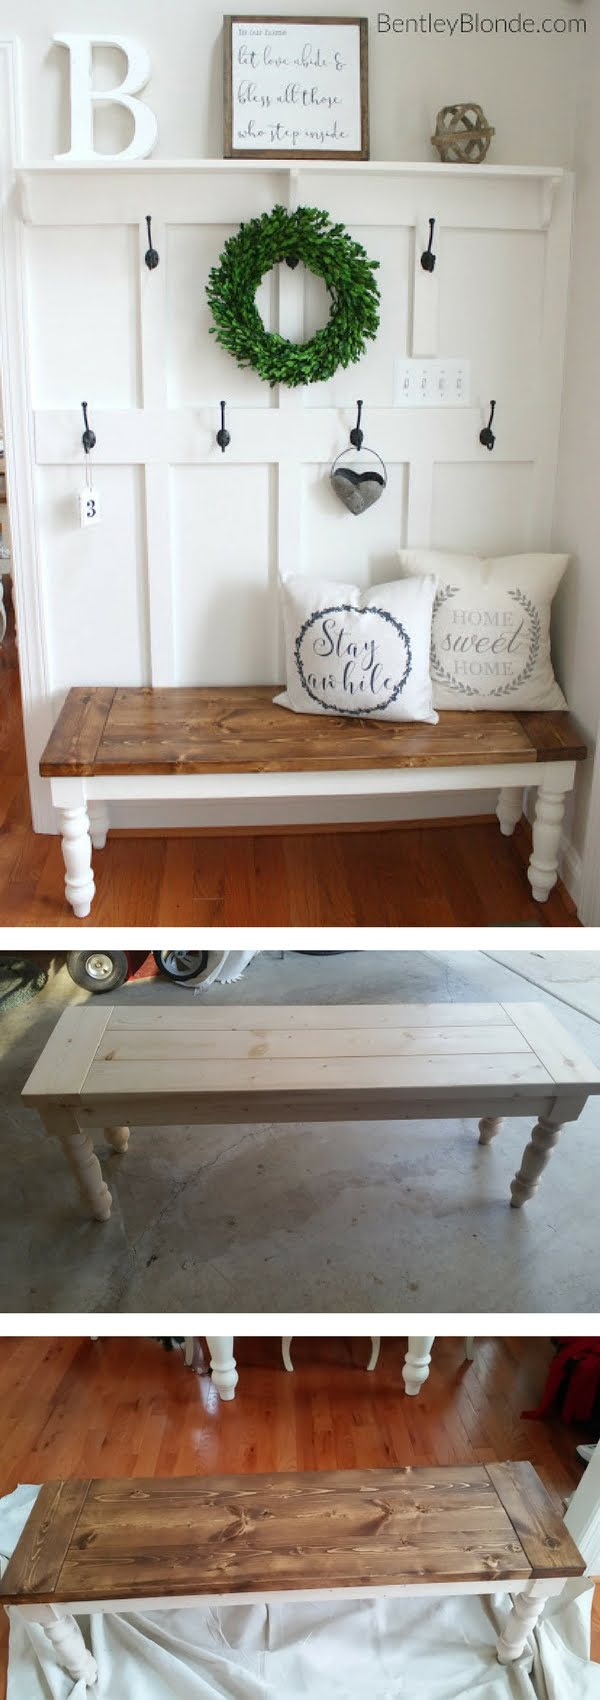 How to make a DIY farmhouse bench